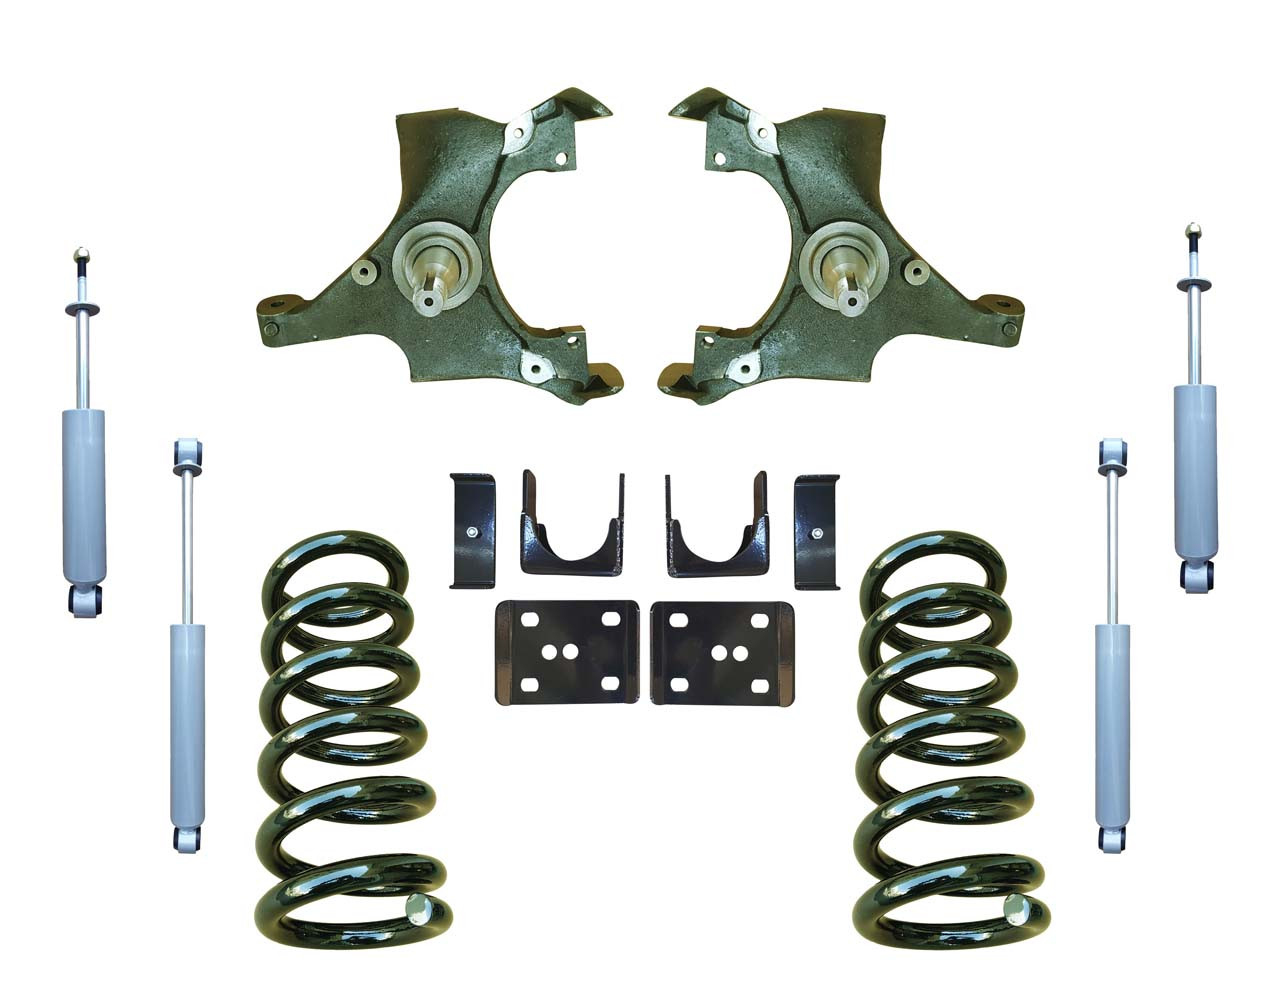 5/6 Lowering Spindle Drop Kit and Drop Shocks for Chevrolet GMC C1500